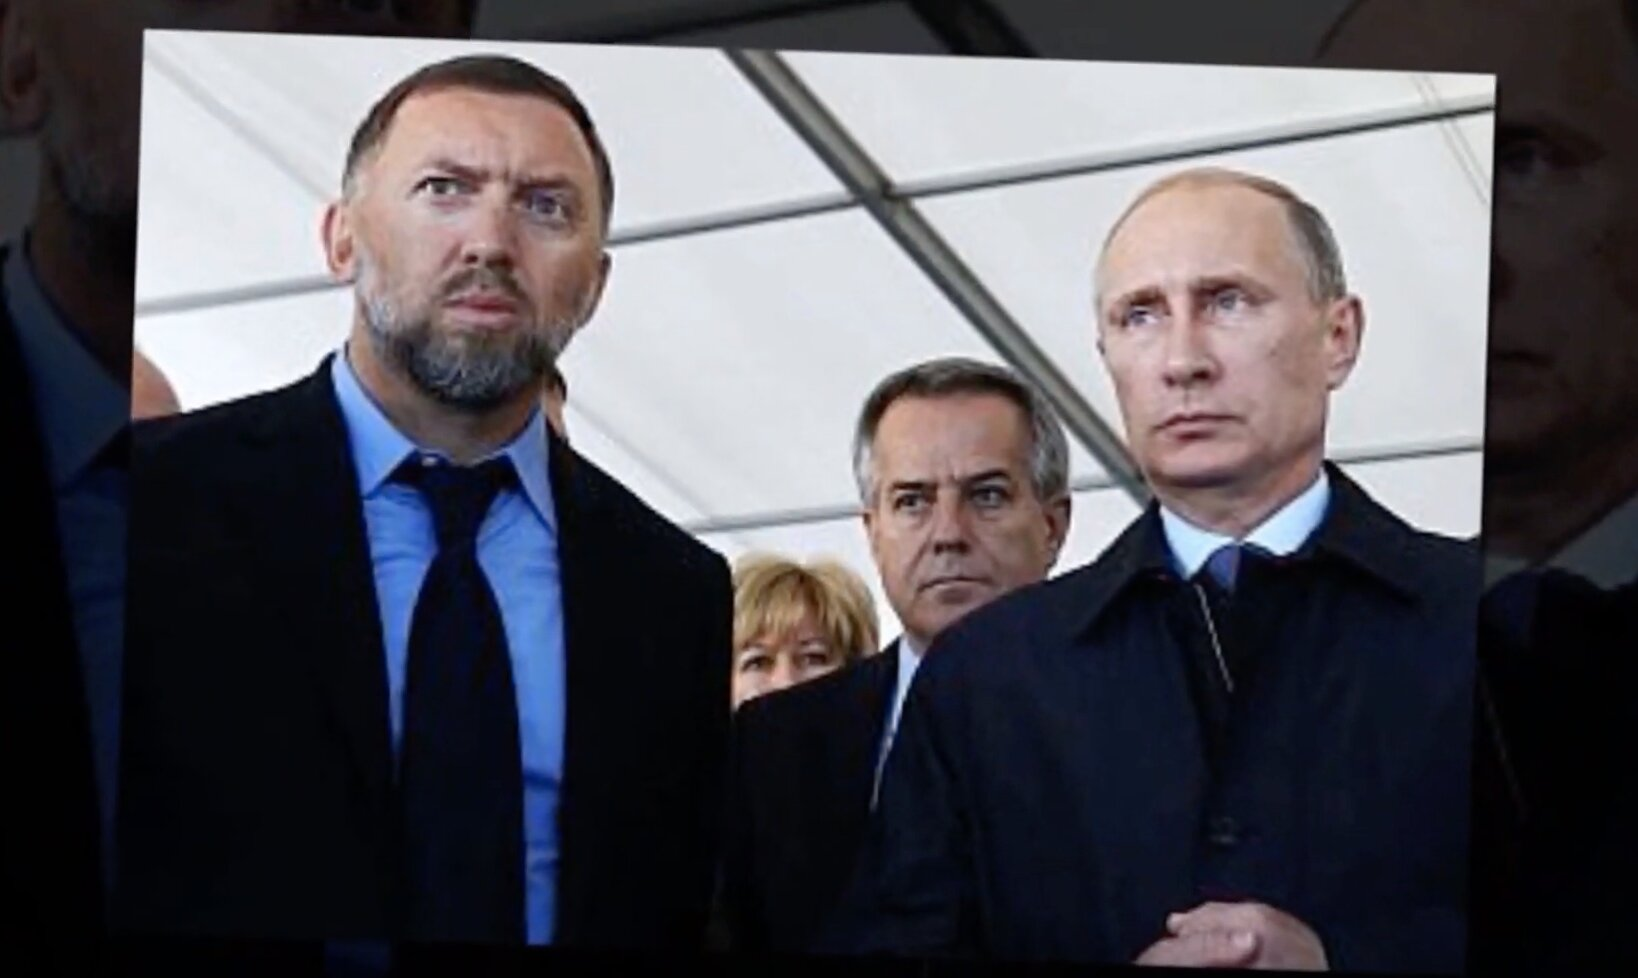 Tanker belonging to Putin friend Oleg Deripaska confiscated with 20-tons of cocaine at port of Philadelphia. Connection with…TRUMP!